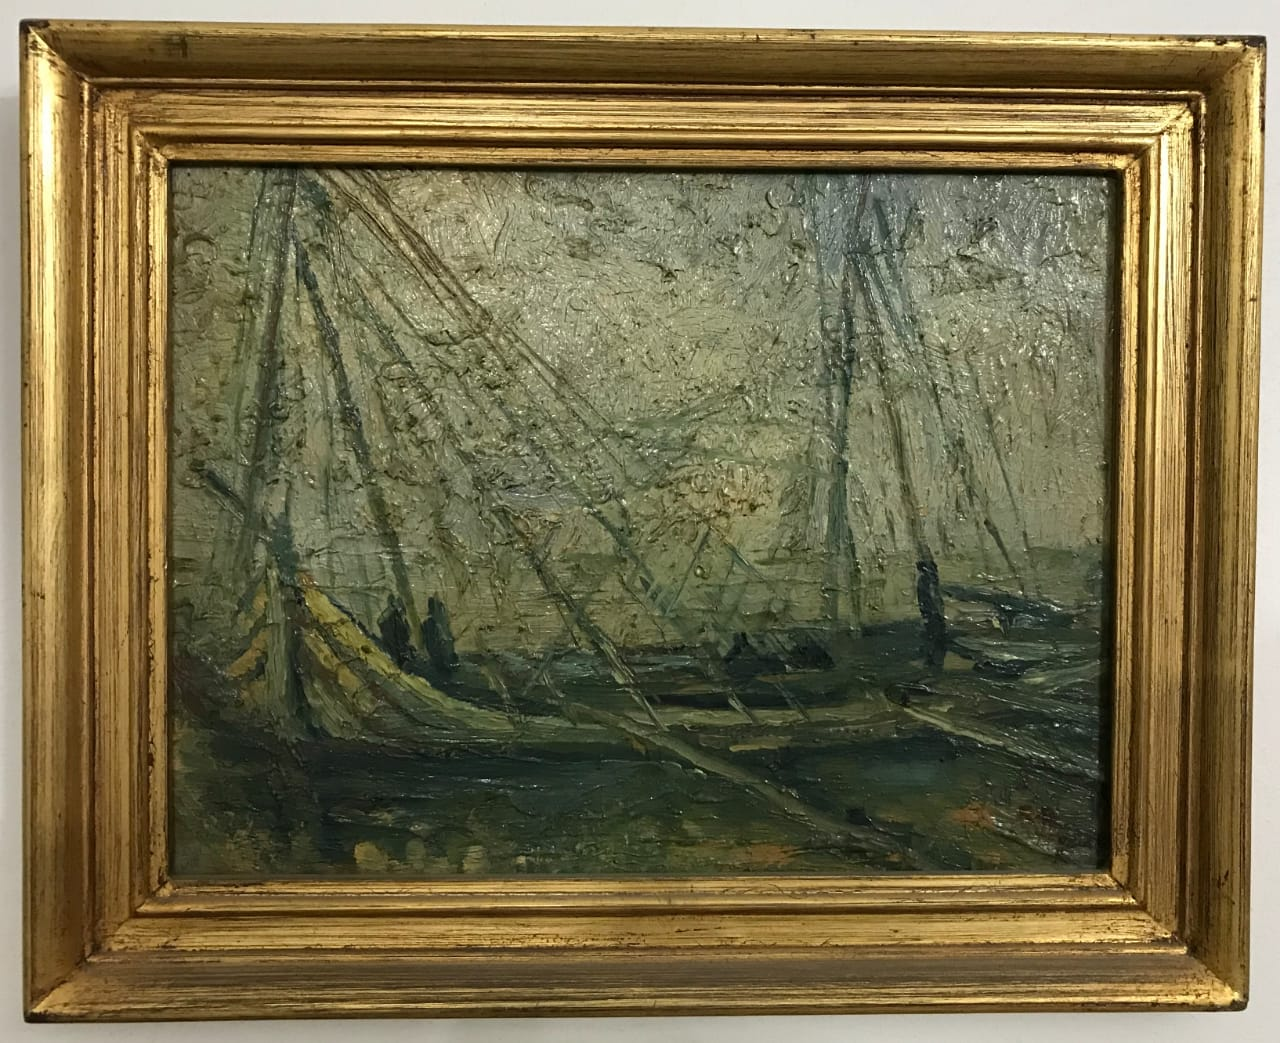 Ragheb Ayad, Les Bateaux, Oil on wood 70x65cm Signed and dated bottom left